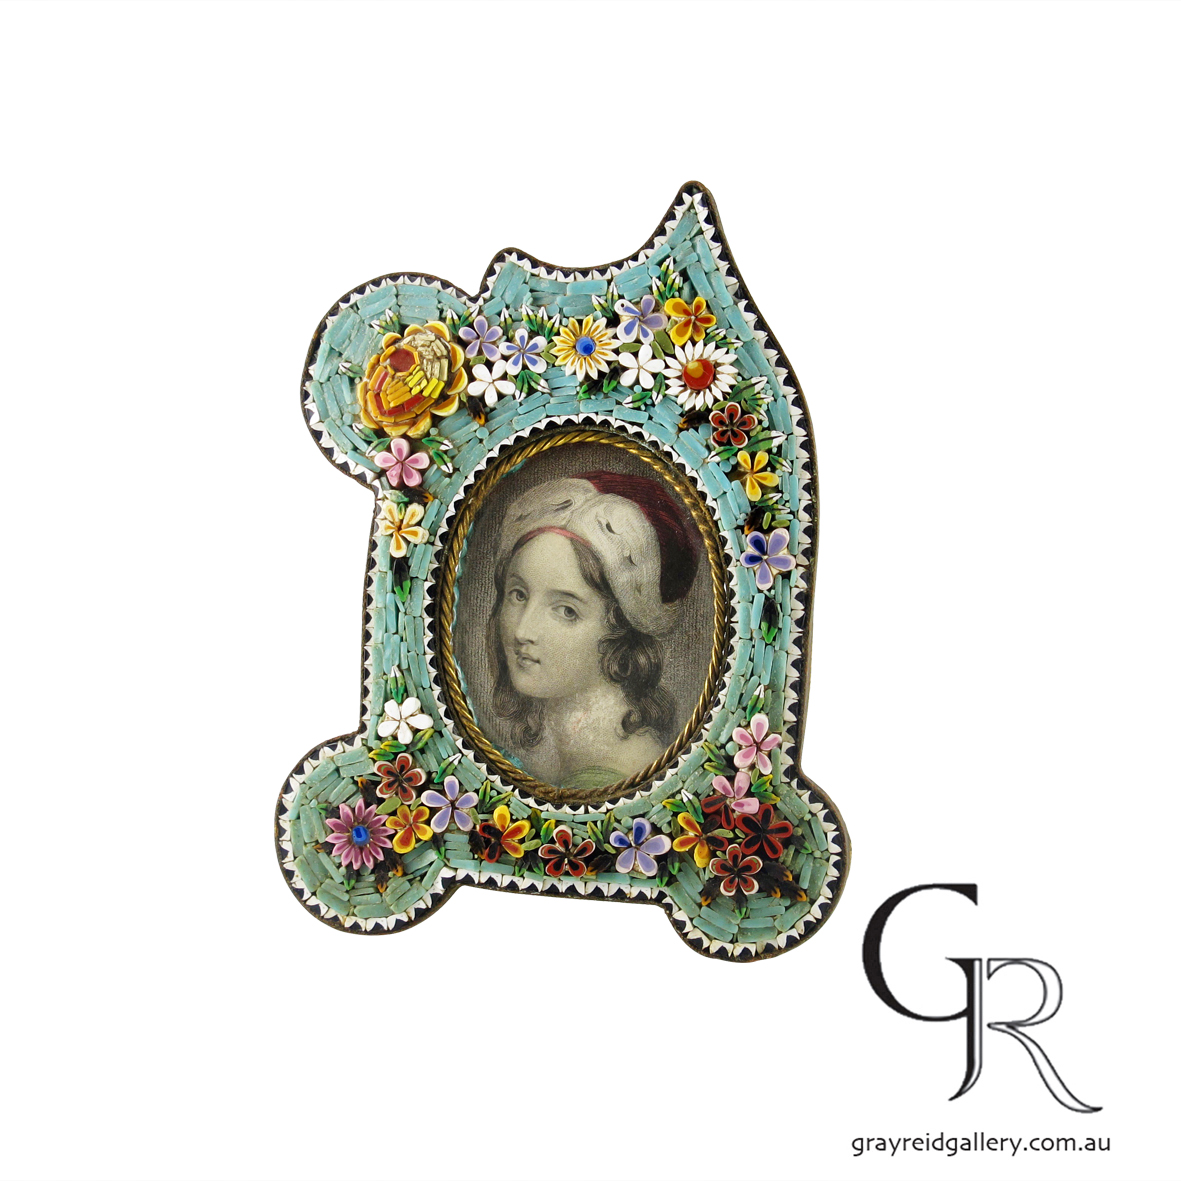 antiques and collectables melbourne micro mosaic picture frame Gray Reid Gallery 1.jpg